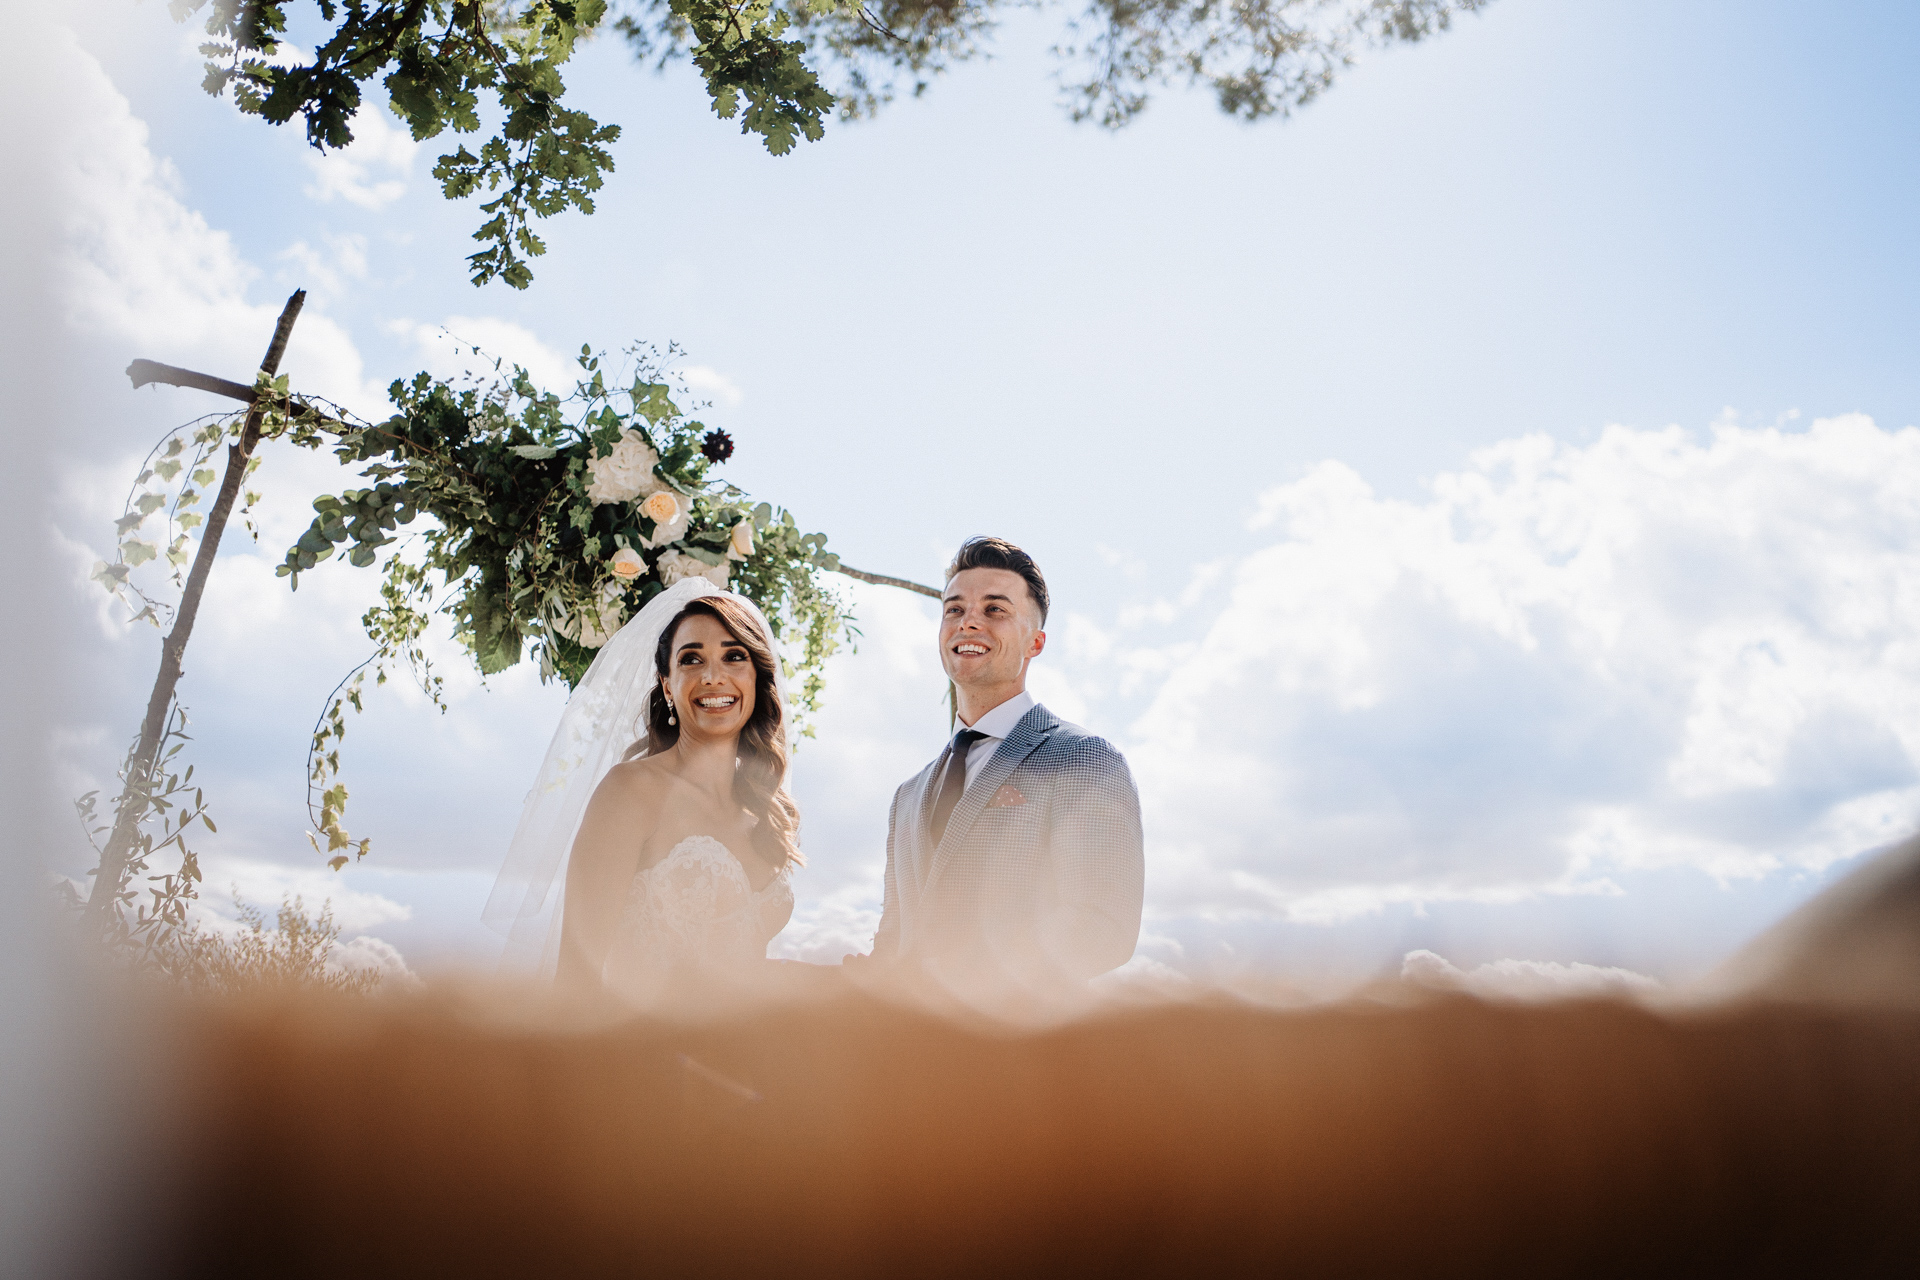 Fattoria di Corsignano Outdoor Elopement Ceremony Image | The couple caters to the guests